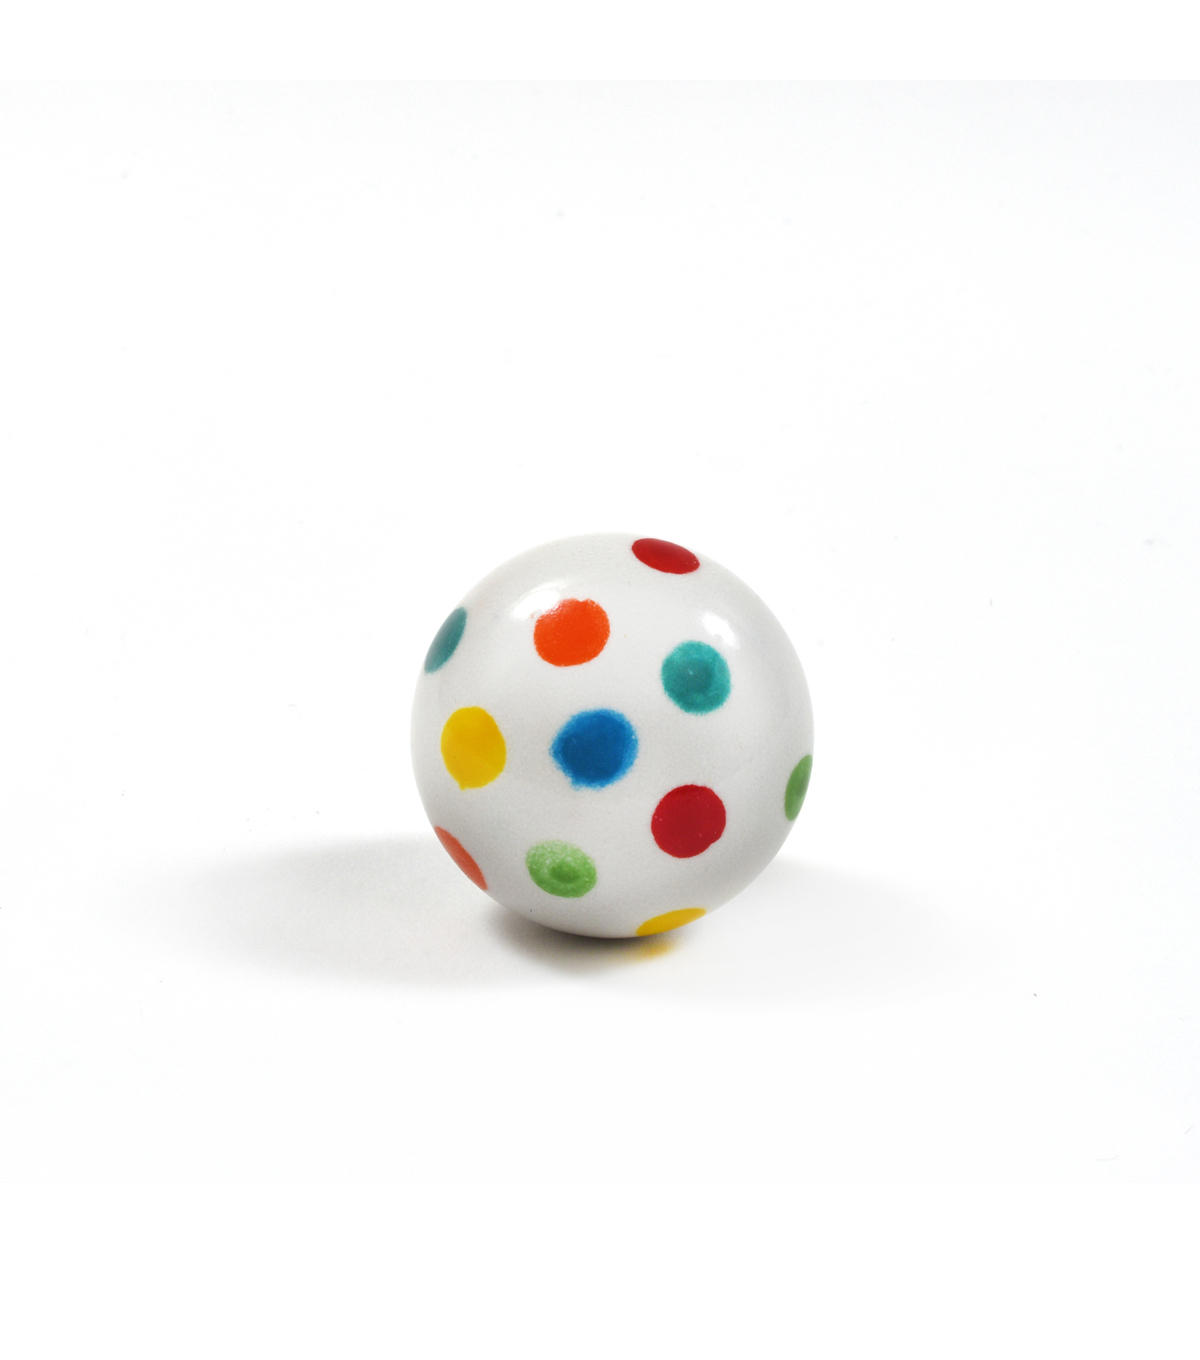 Dritz Home Ceramic Polka Dot Ceramic Ball Knob